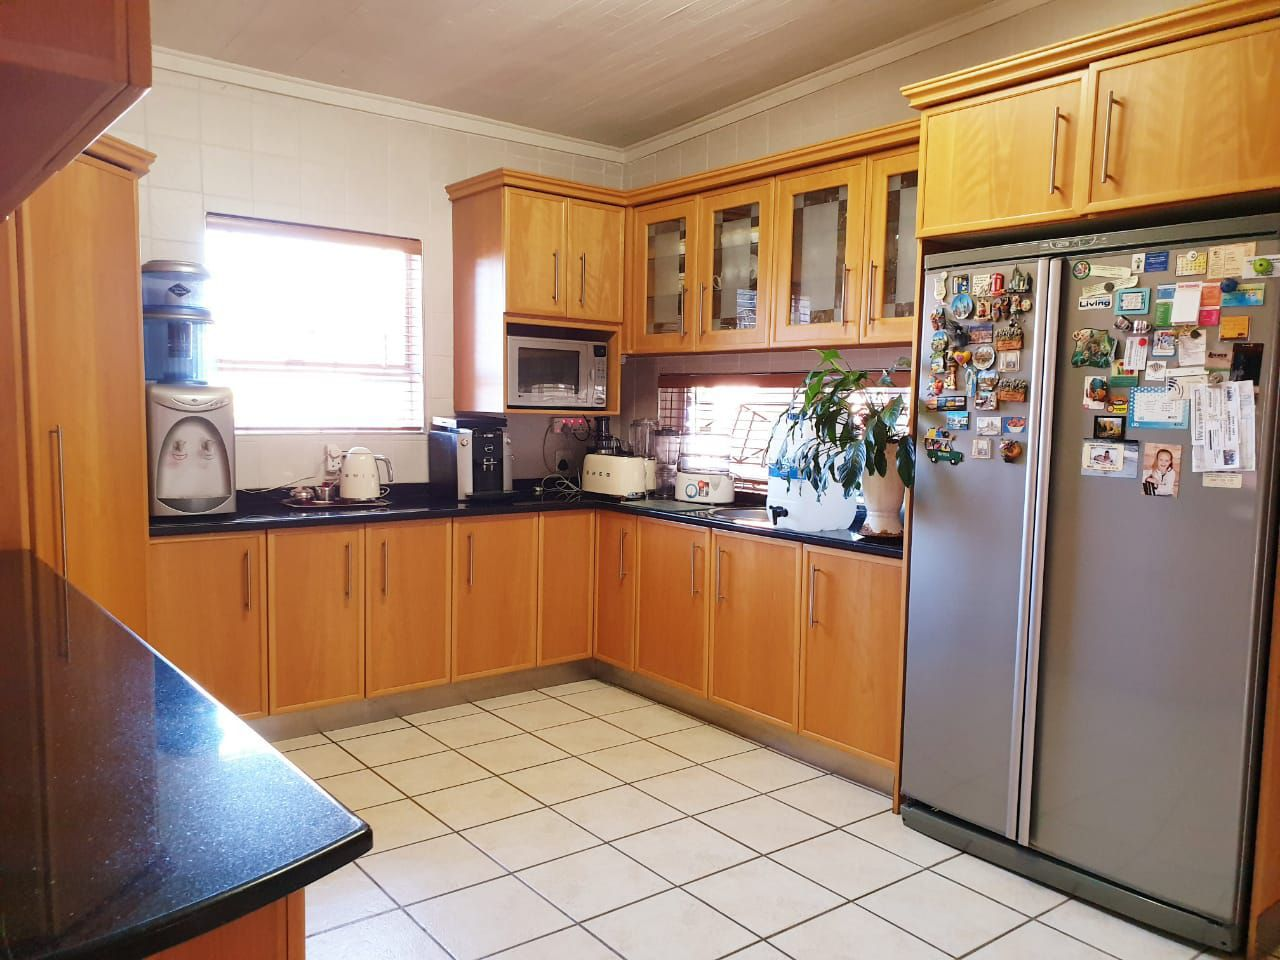 House in Miederpark - Kitchen.jpg